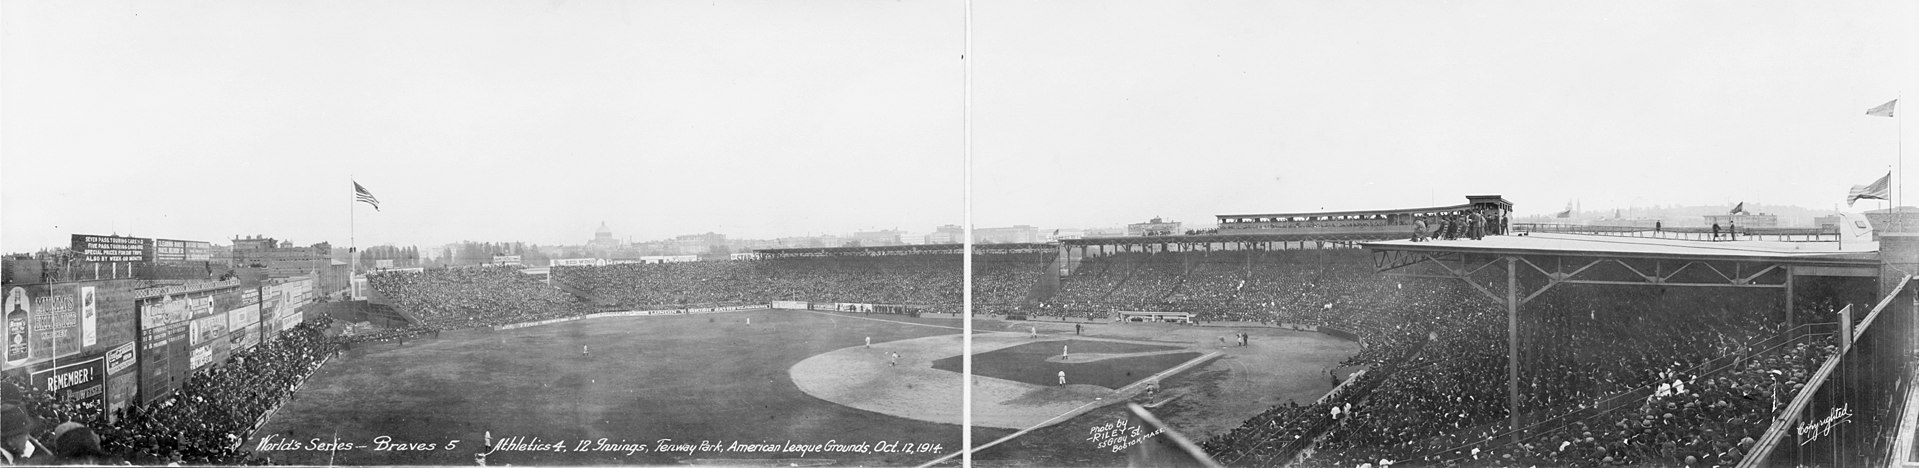 1920px-Fenway-park-1914-world-series